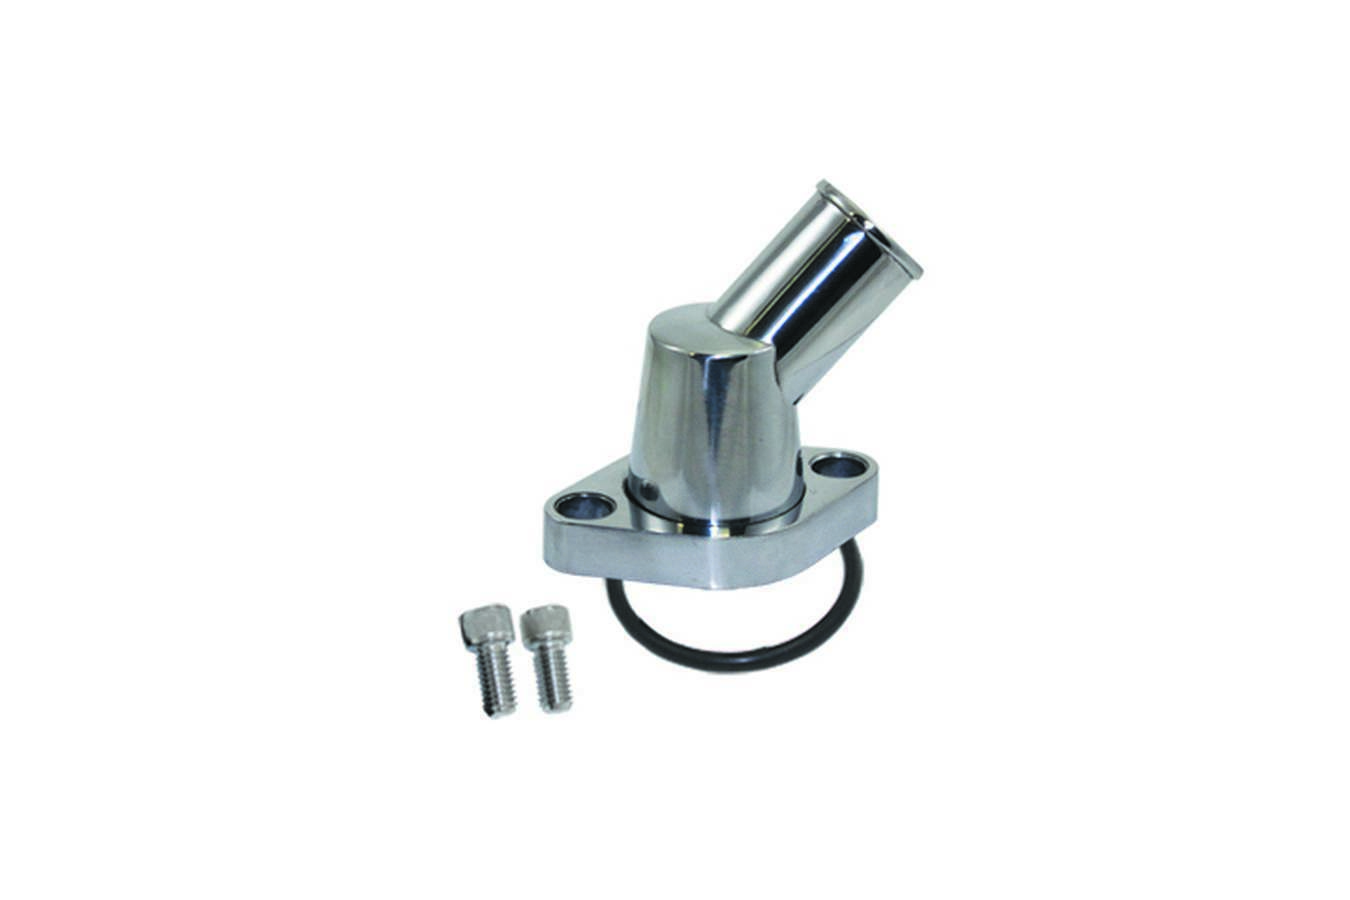 Specialty Products 8455 Water Neck, 45 Degree, 1-1/2 in ID Hose, Swivel, O-Ring, Hardware Included, Aluminum, Polished, Chevy V8, Each